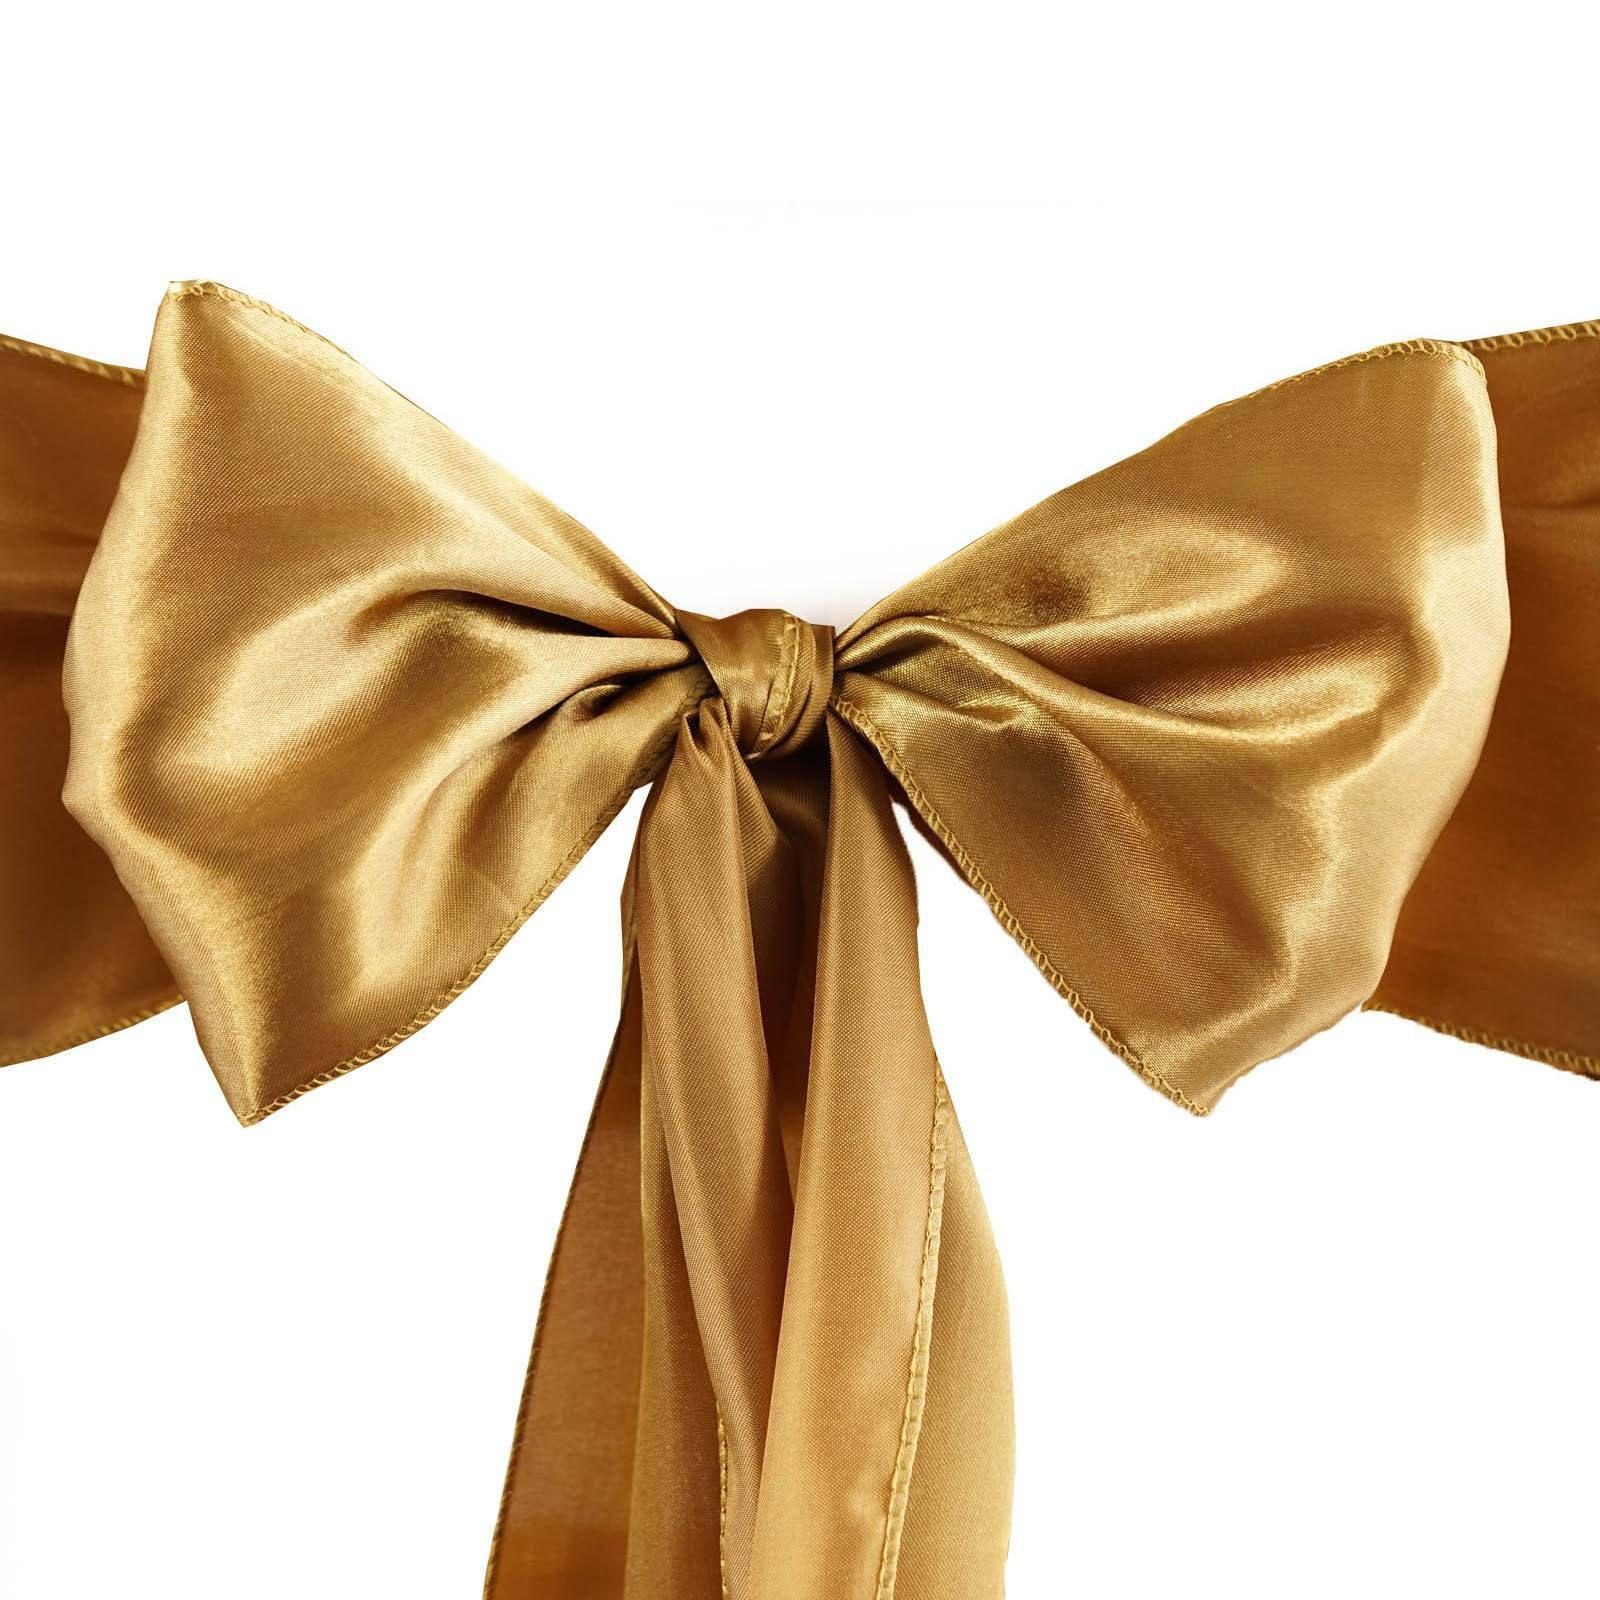 bulk satin chair covers most comfortable folding 5 pack 6 x106 gold sash tablecloths factory 5pcs sashes tie bows catering wedding party decorations 6x106